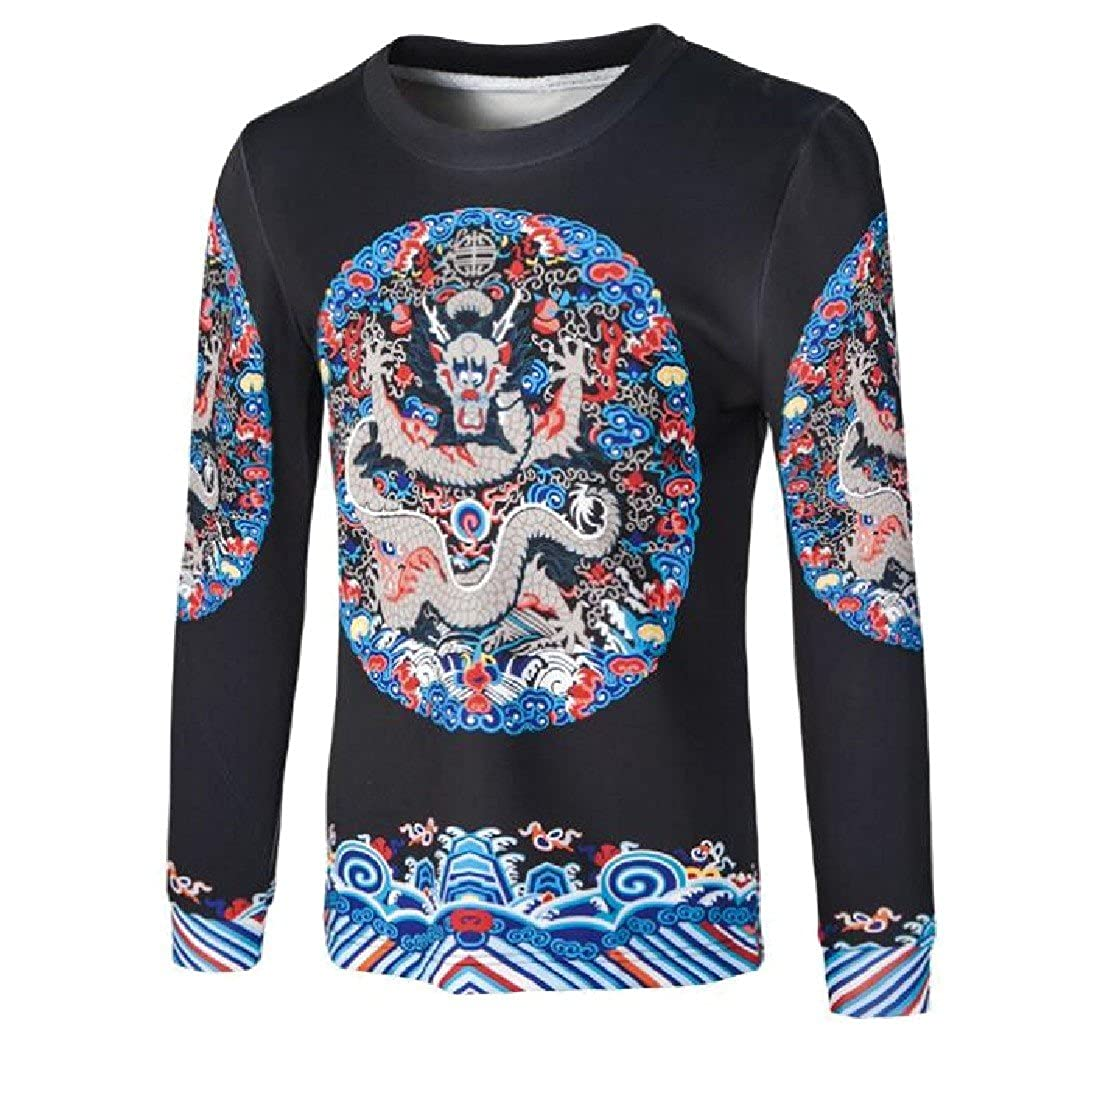 Nicelly Mens Chinese style Floral Pullover Plus Size Crew Neck Sweatshirt Black L